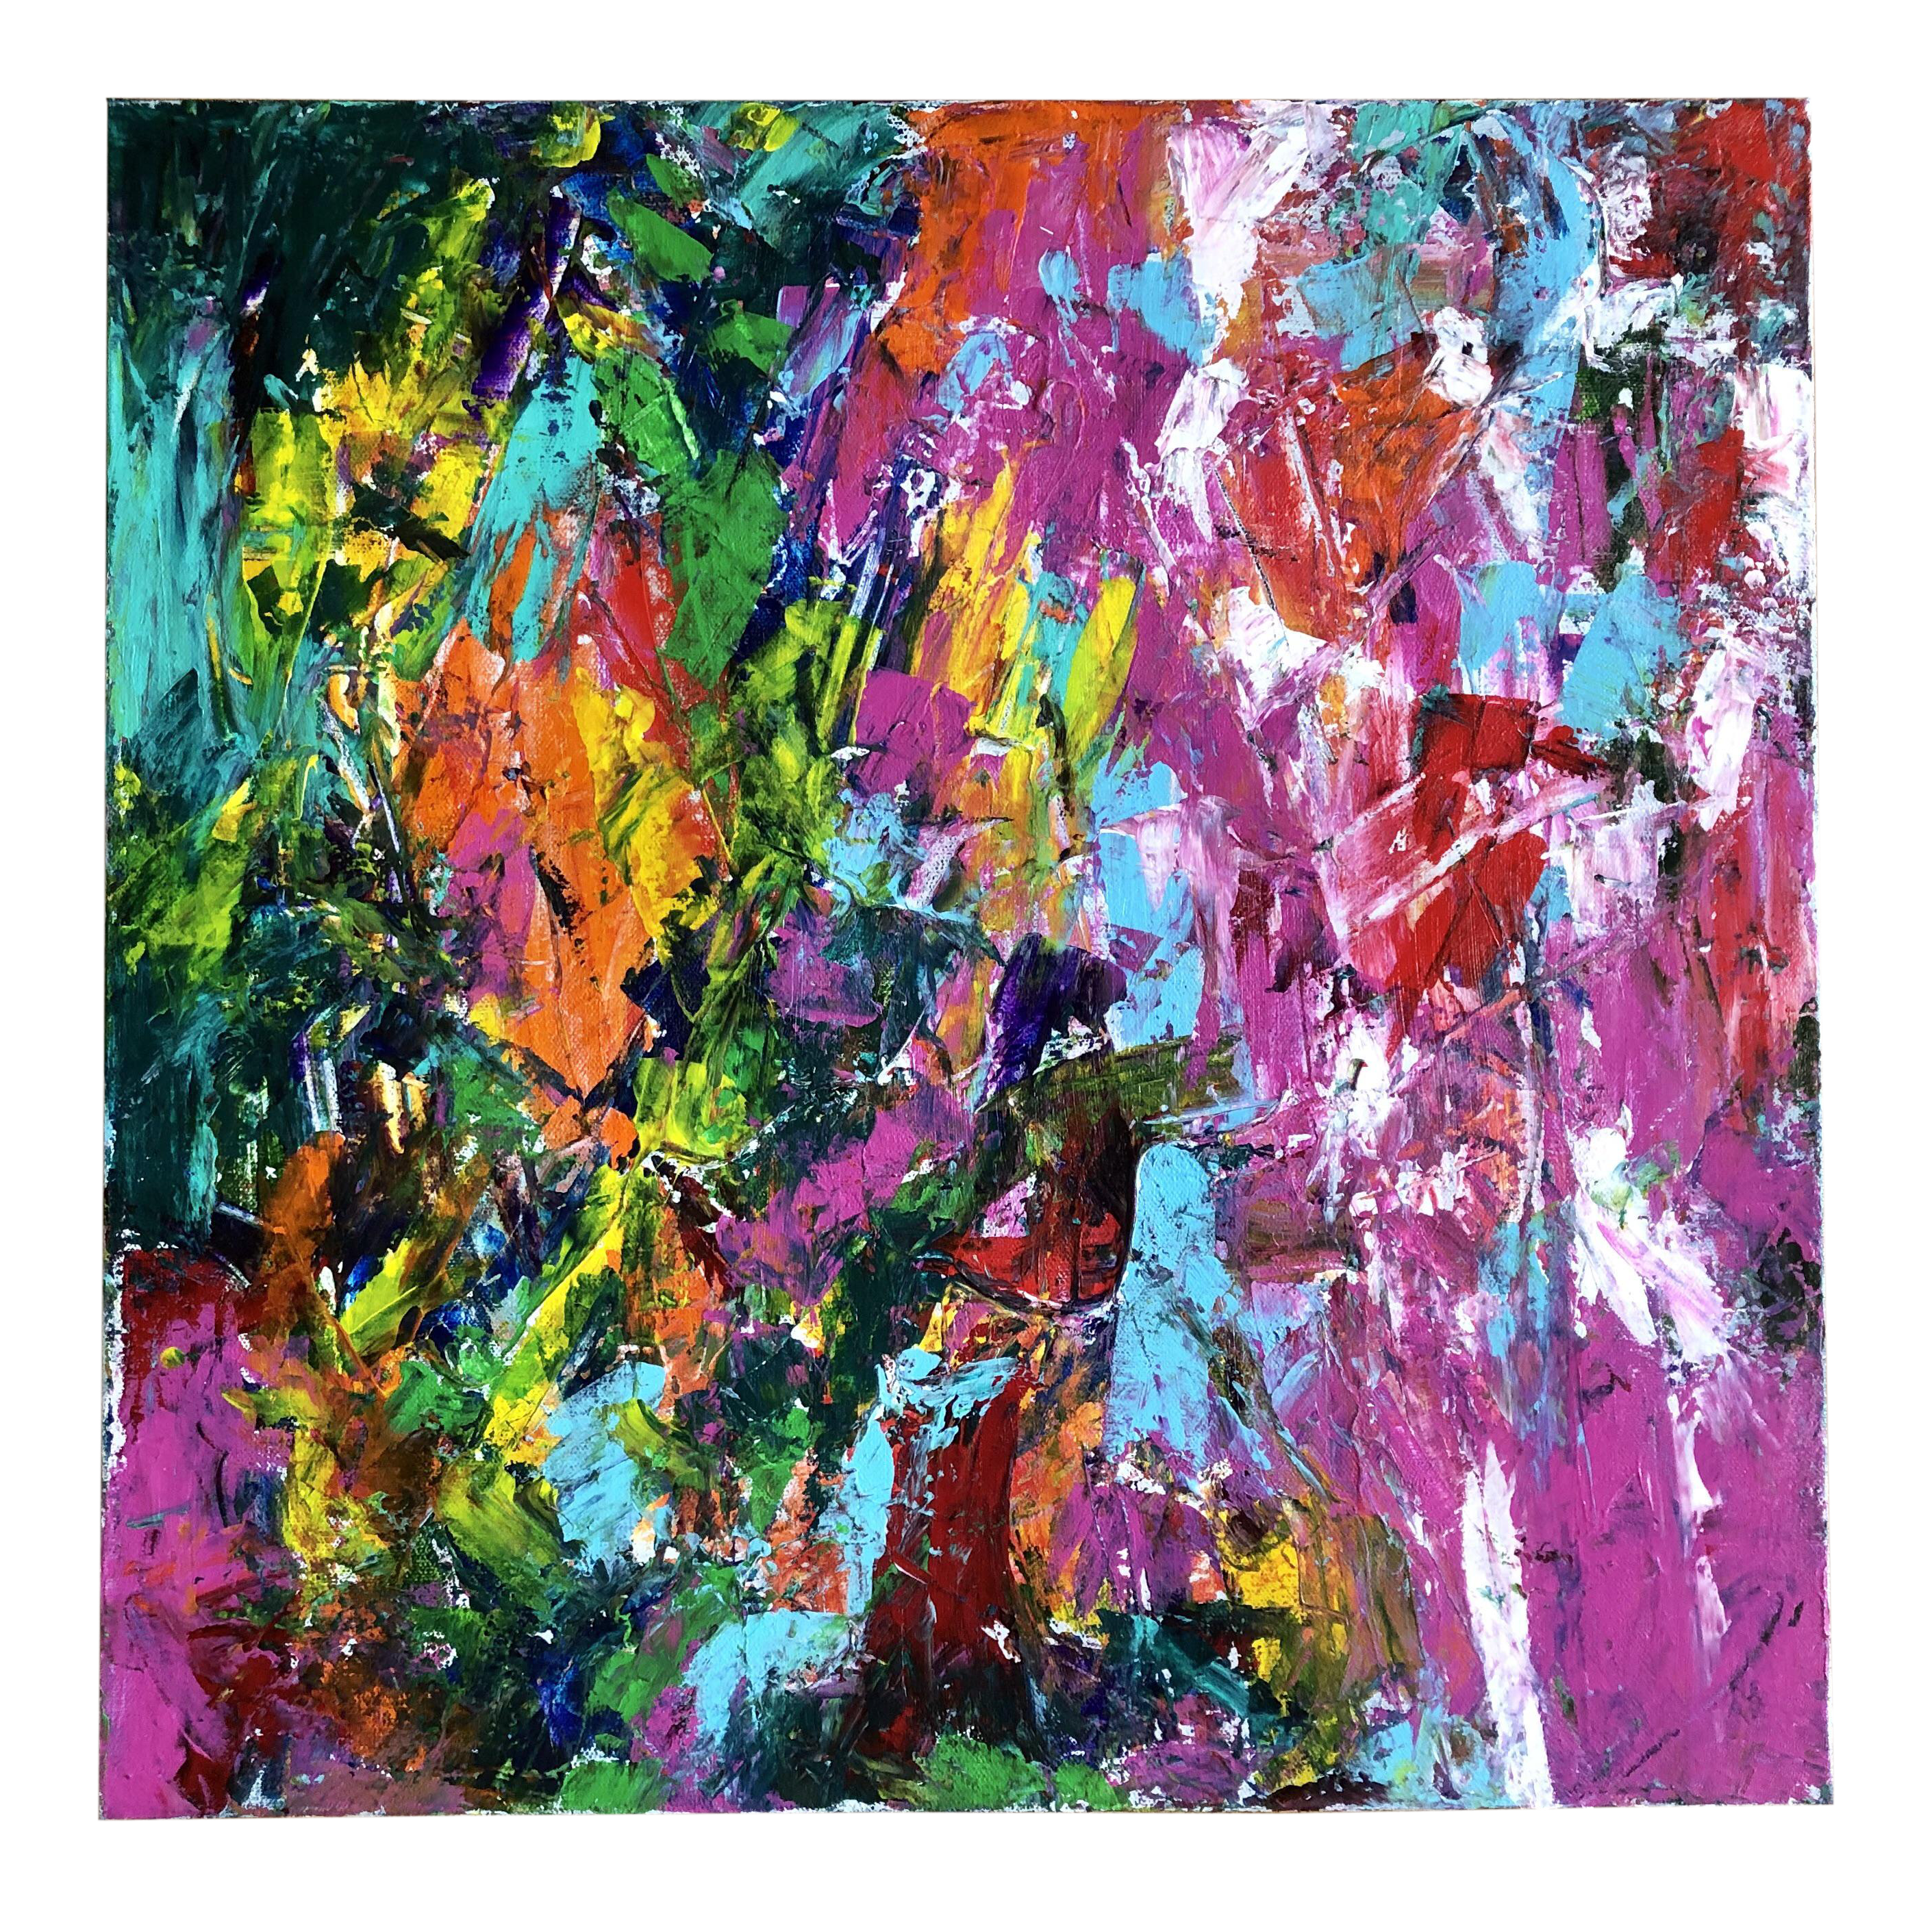 Nancy Smith Hoopla Original Abstract Acrylic Painting On Chairish Com Abstract Painting Art Orig Oil Painting Abstract Painting Abstract Painting Acrylic